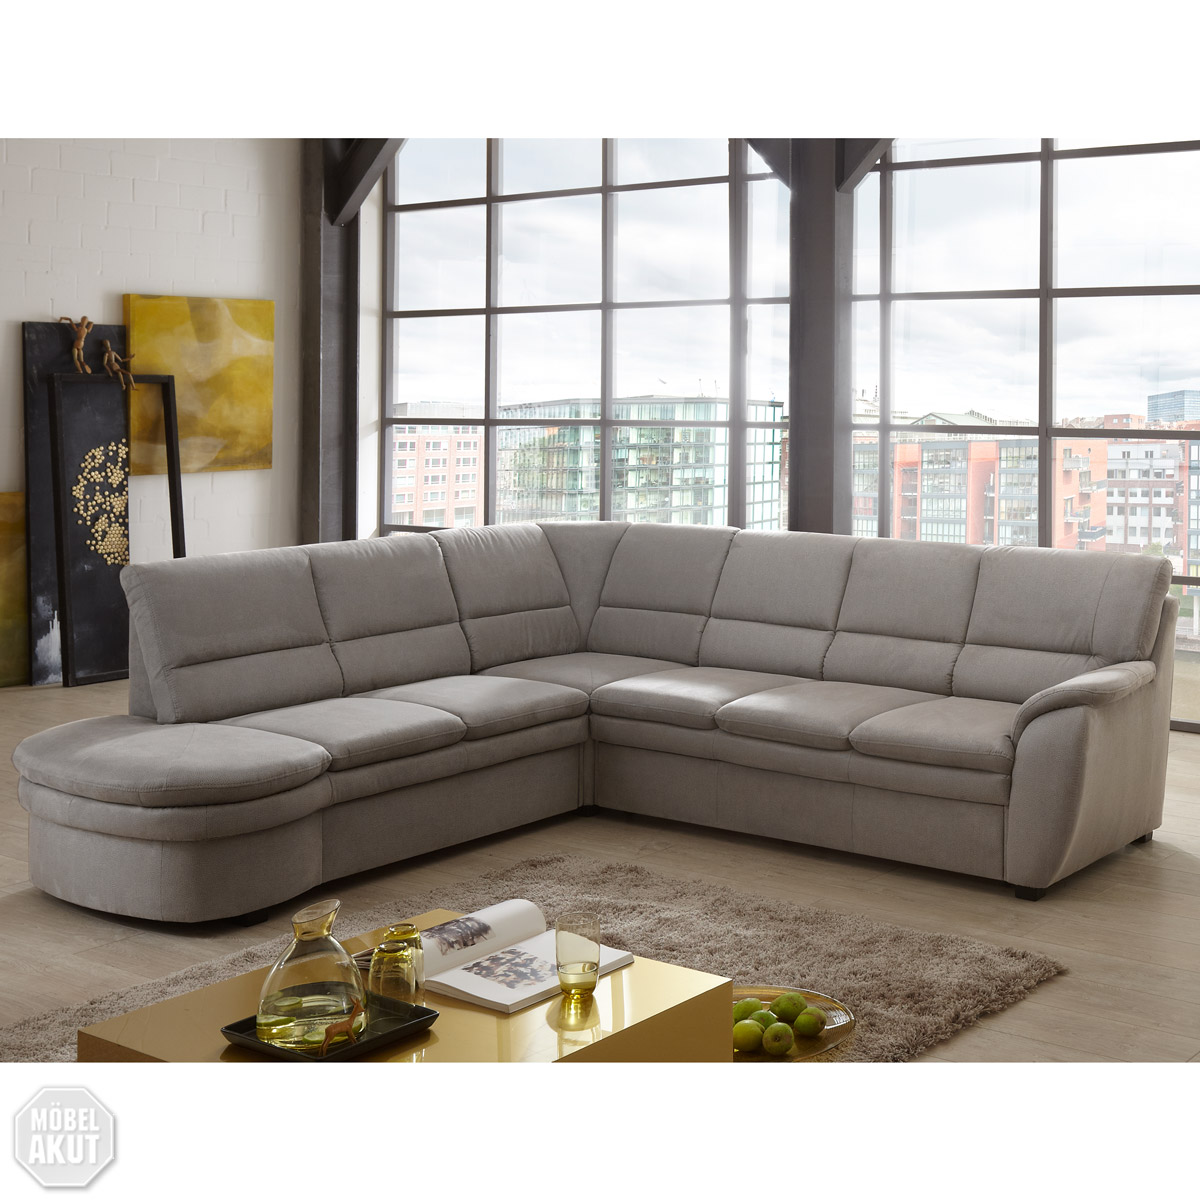 Ecksofa ginger sofa wohnlandschaft grau mit bettfunktion for Sofa mit bettfunktion